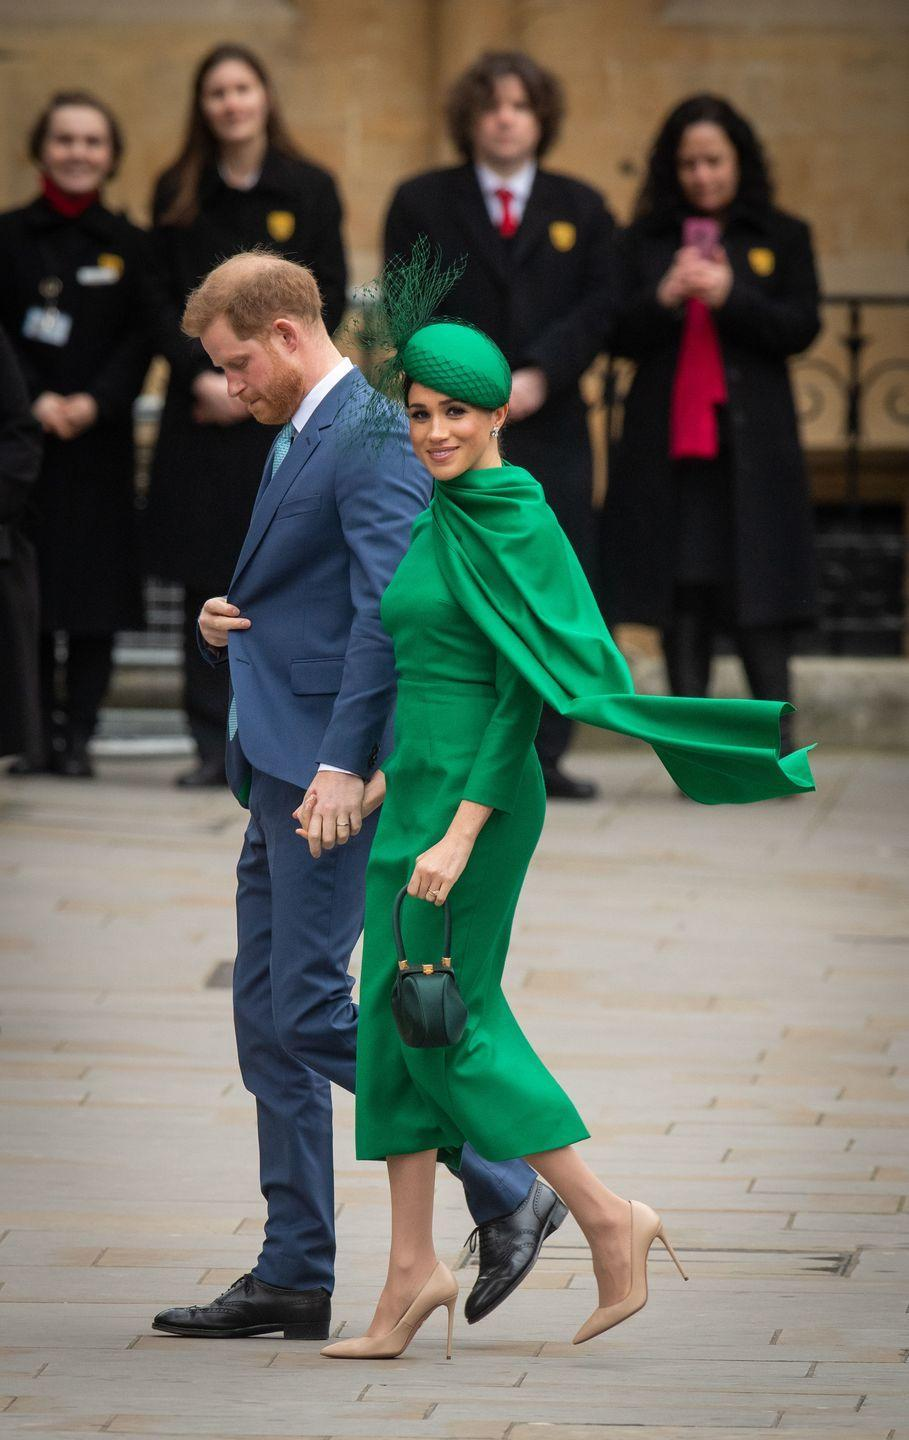 """<p>The Duchess arrived at Westminster Abbey for the annual Commonwealth Day Service <a href=""""https://www.townandcountrymag.com/society/tradition/a31279858/meghan-markle-green-emilia-wickstead-dress-commonwealth-day-service-photos-2020/"""" rel=""""nofollow noopener"""" target=""""_blank"""" data-ylk=""""slk:wearing a stunning Emilia Wickstead dress"""" class=""""link rapid-noclick-resp"""">wearing a stunning Emilia Wickstead dress</a>, paired with a William Chambers hat, Aquazzura heels, and a Gabriella Hearst bag.</p>"""